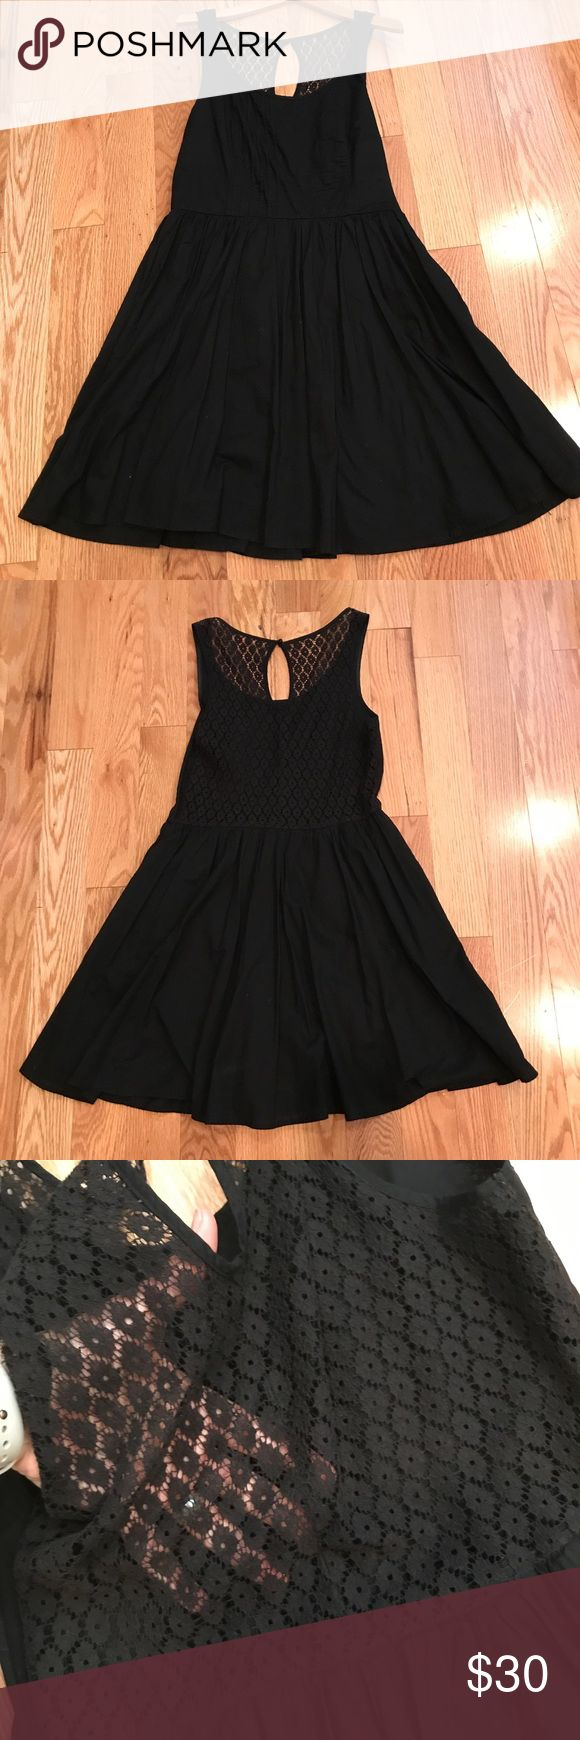 Lace back black flown sundress Lace back black flown sundress. Size Med/Large.  Back had no lining so you can see through the lace but the skirt is lined. Side zipper. Dresses